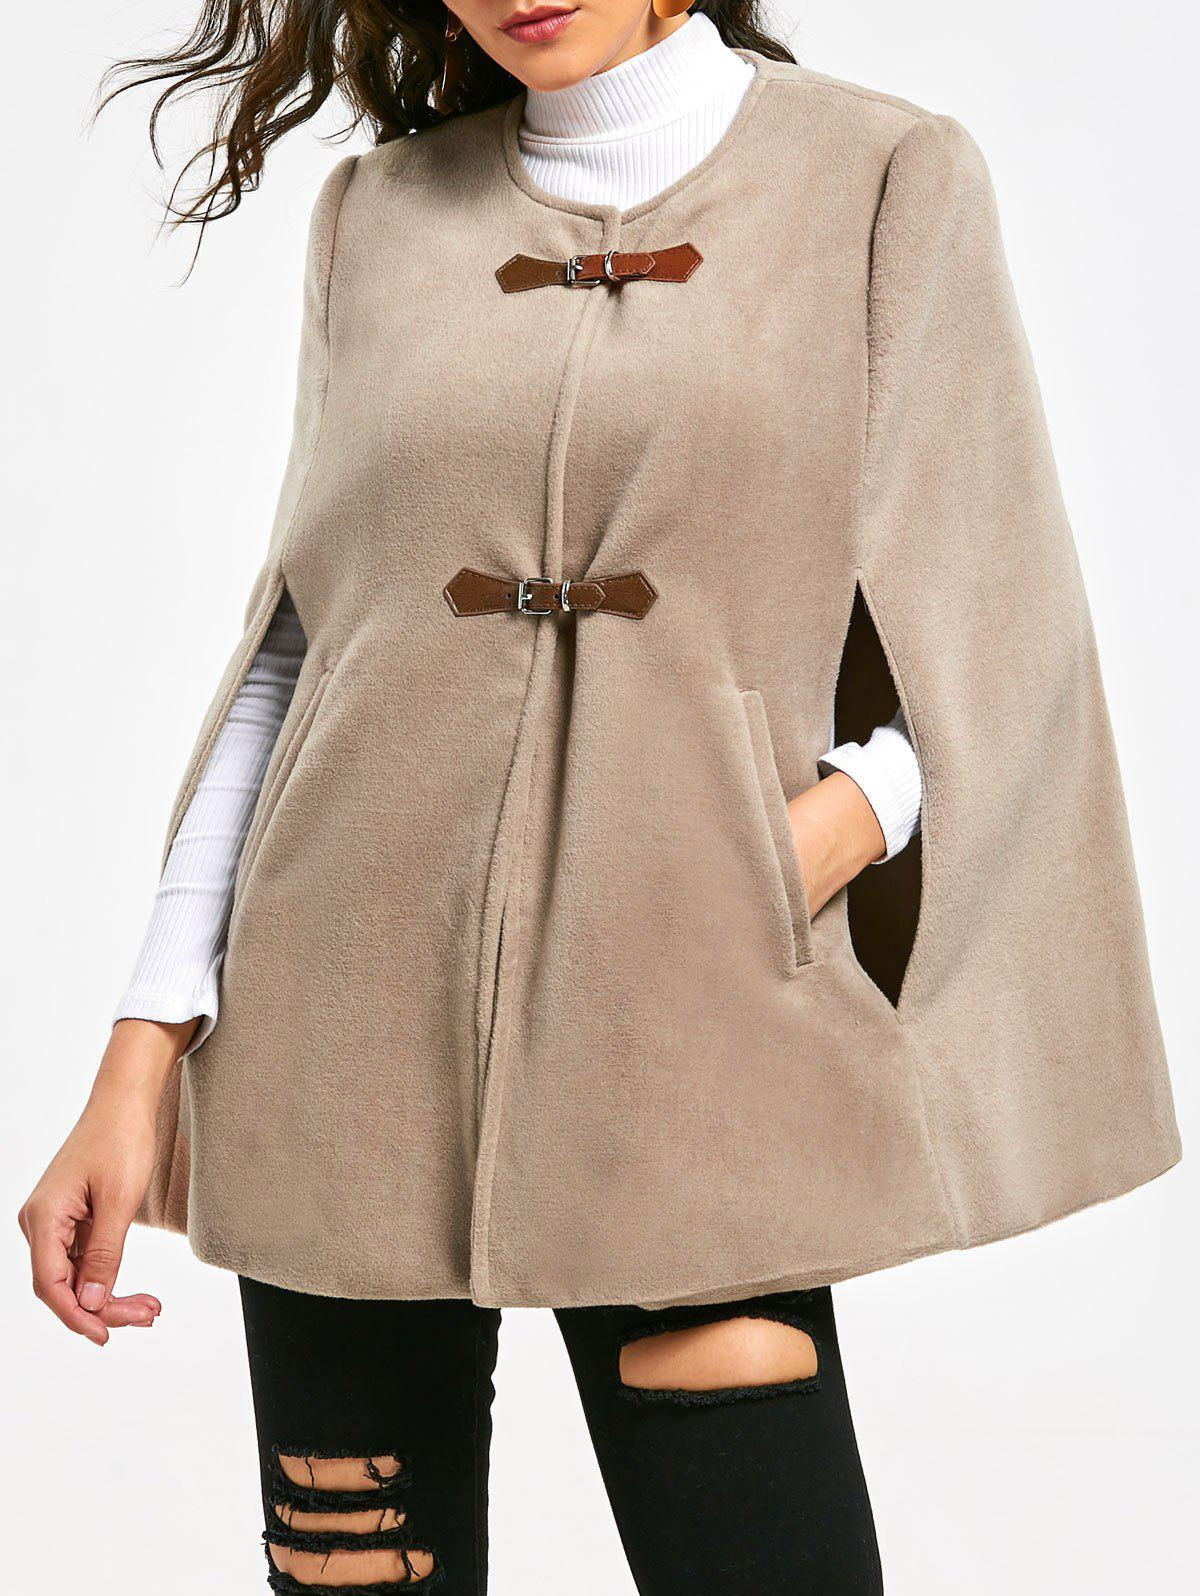 Faux Suede Cape Coat with Batwing Sleeve - APRICOT M